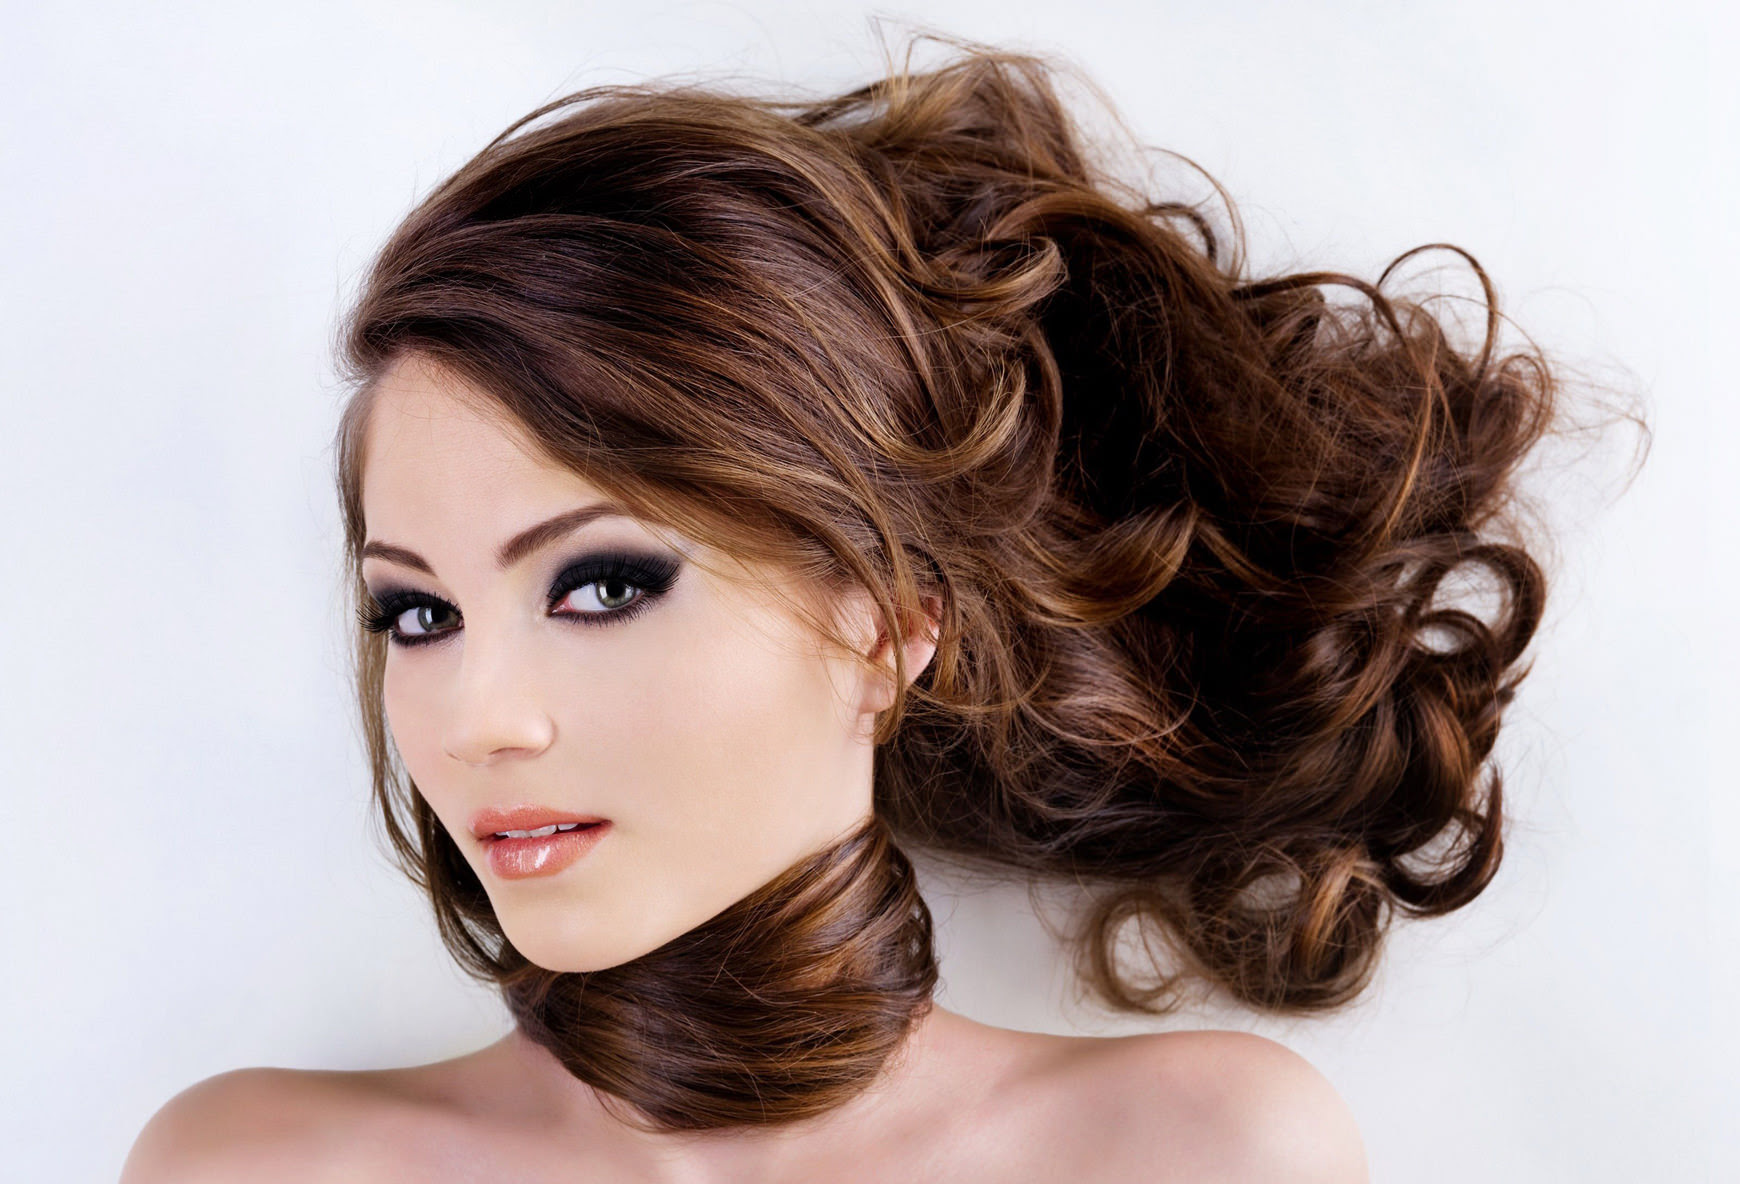 Hair Styling Tips The Holle